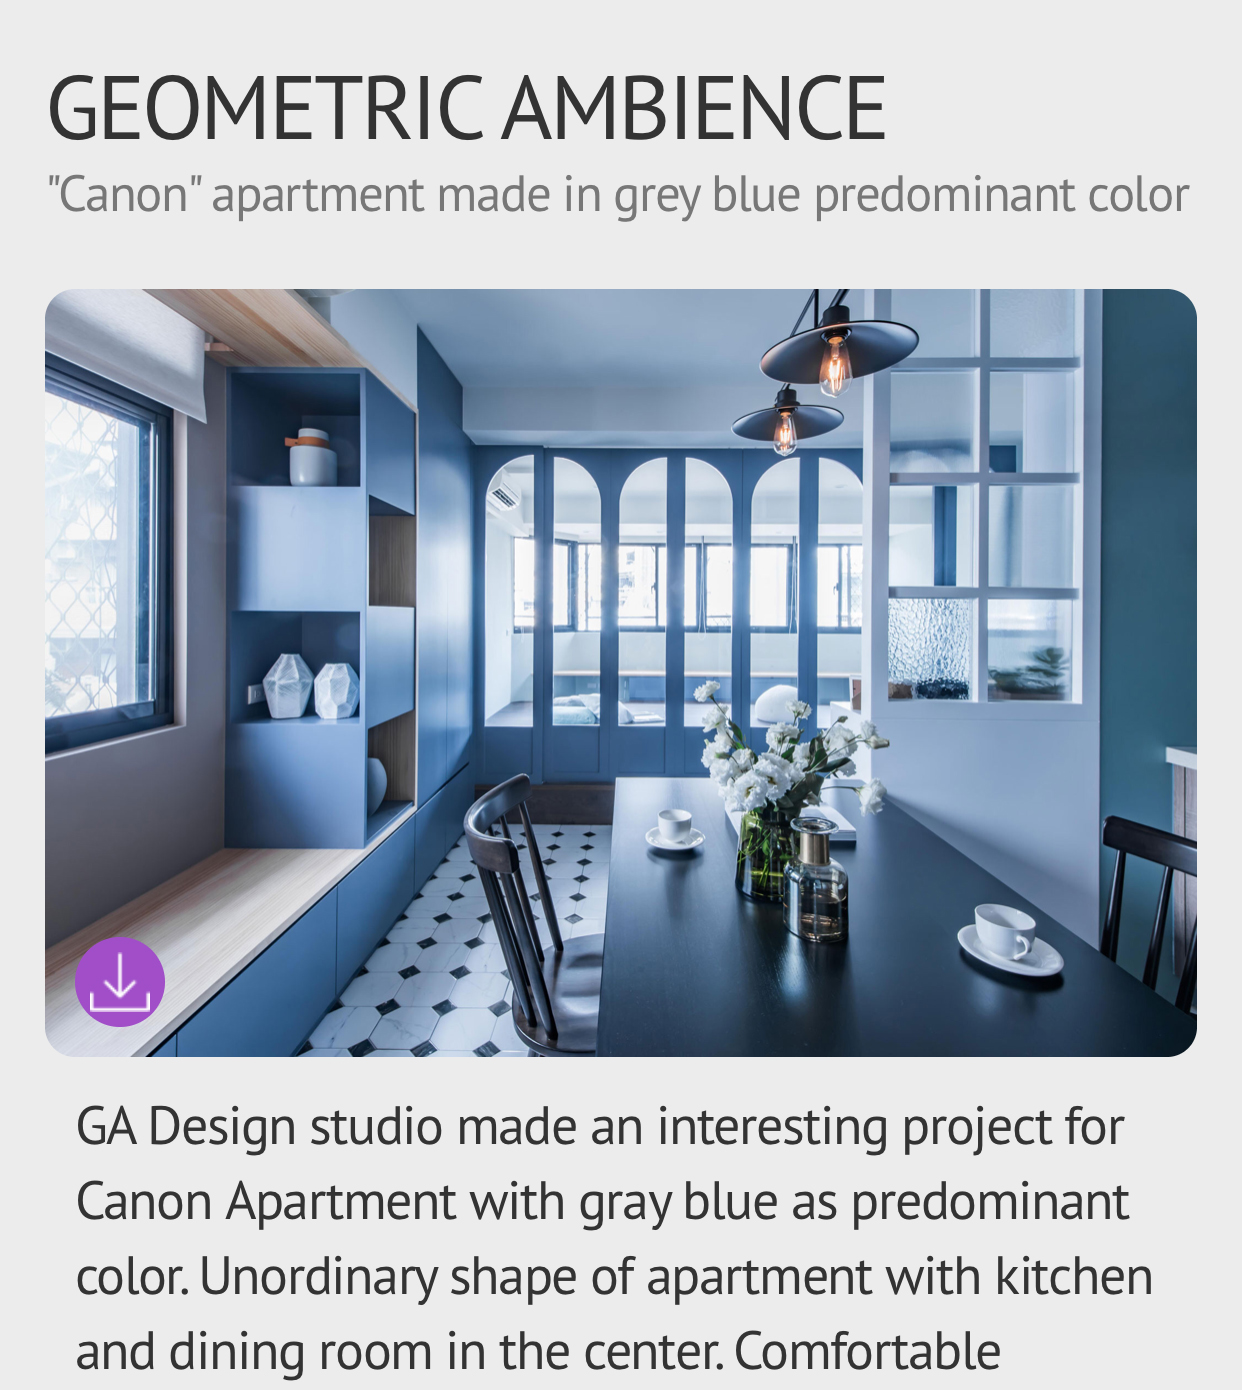 Room Look - GEOMETRIC AMBIENCE